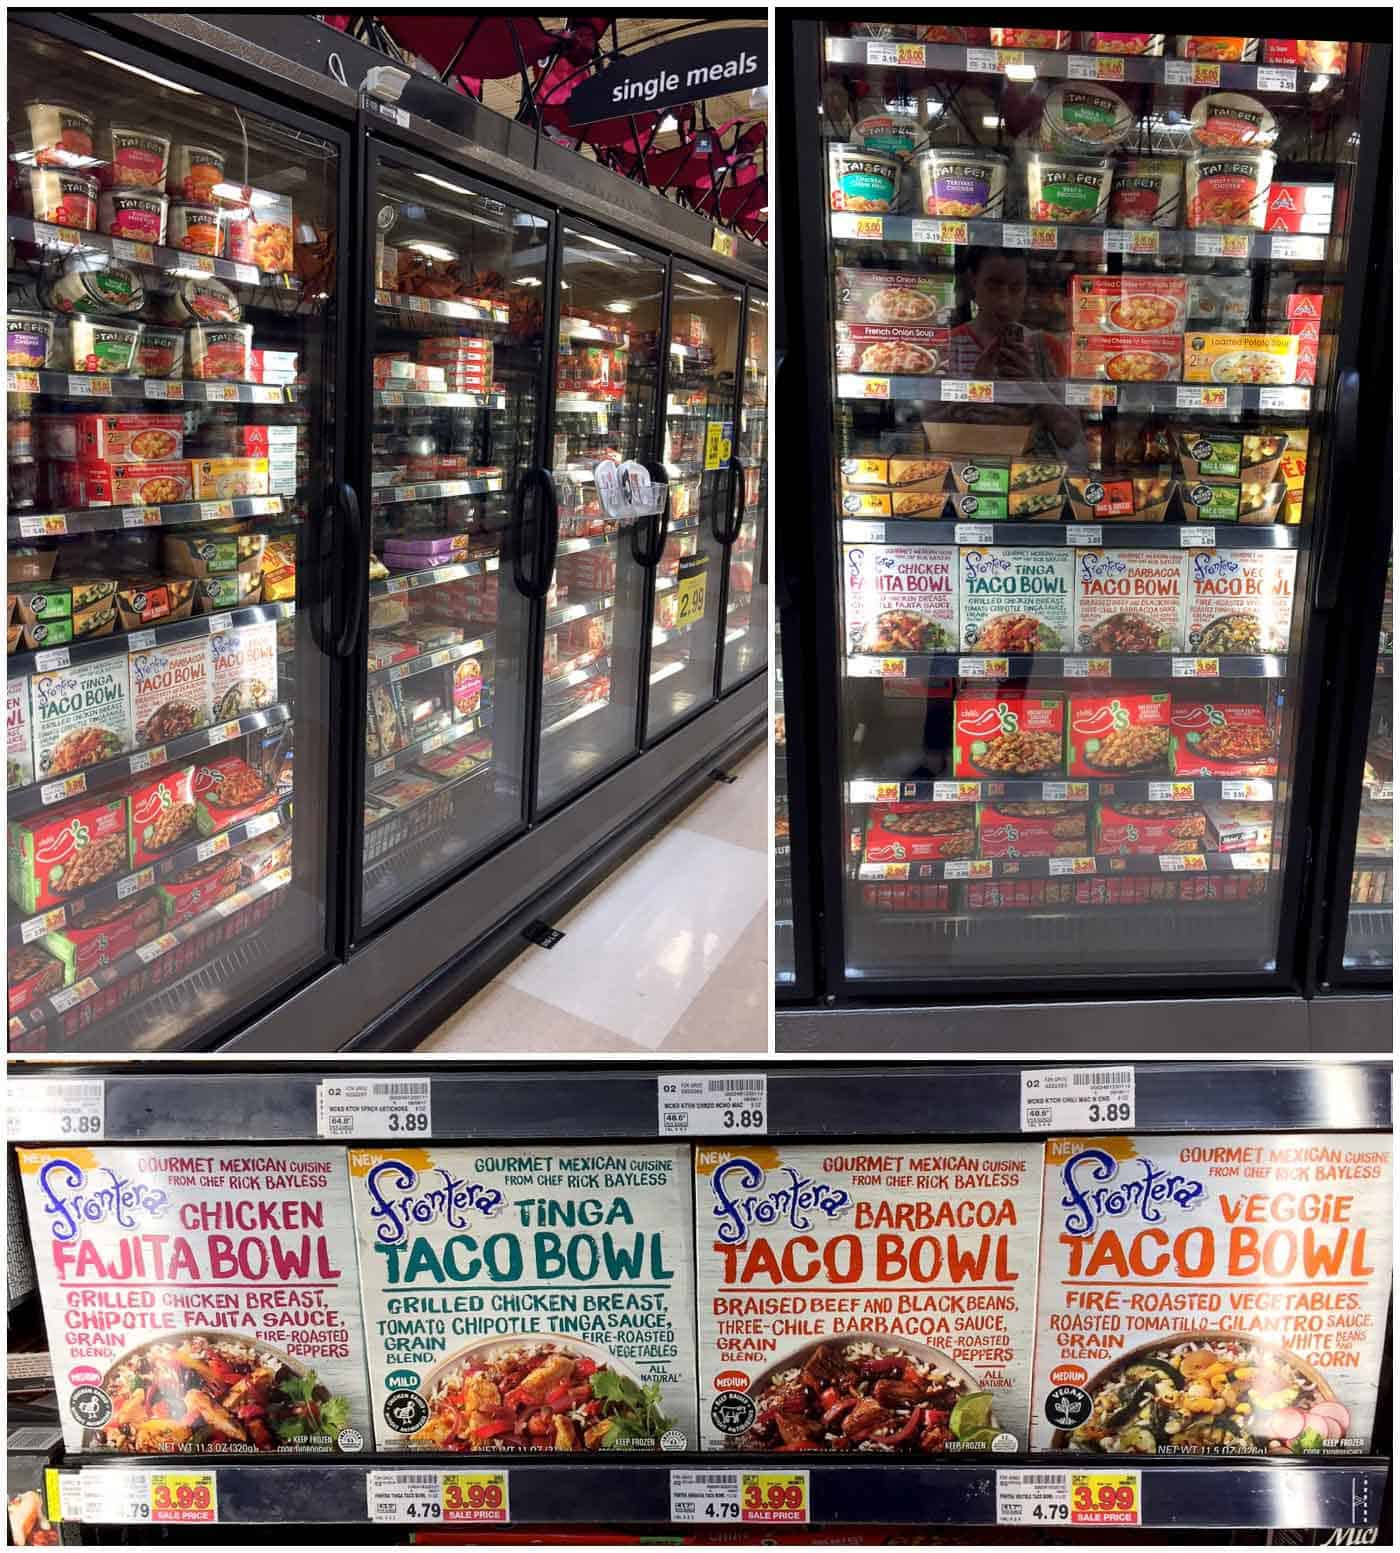 frontera-frozen-meals-in-store-kroger